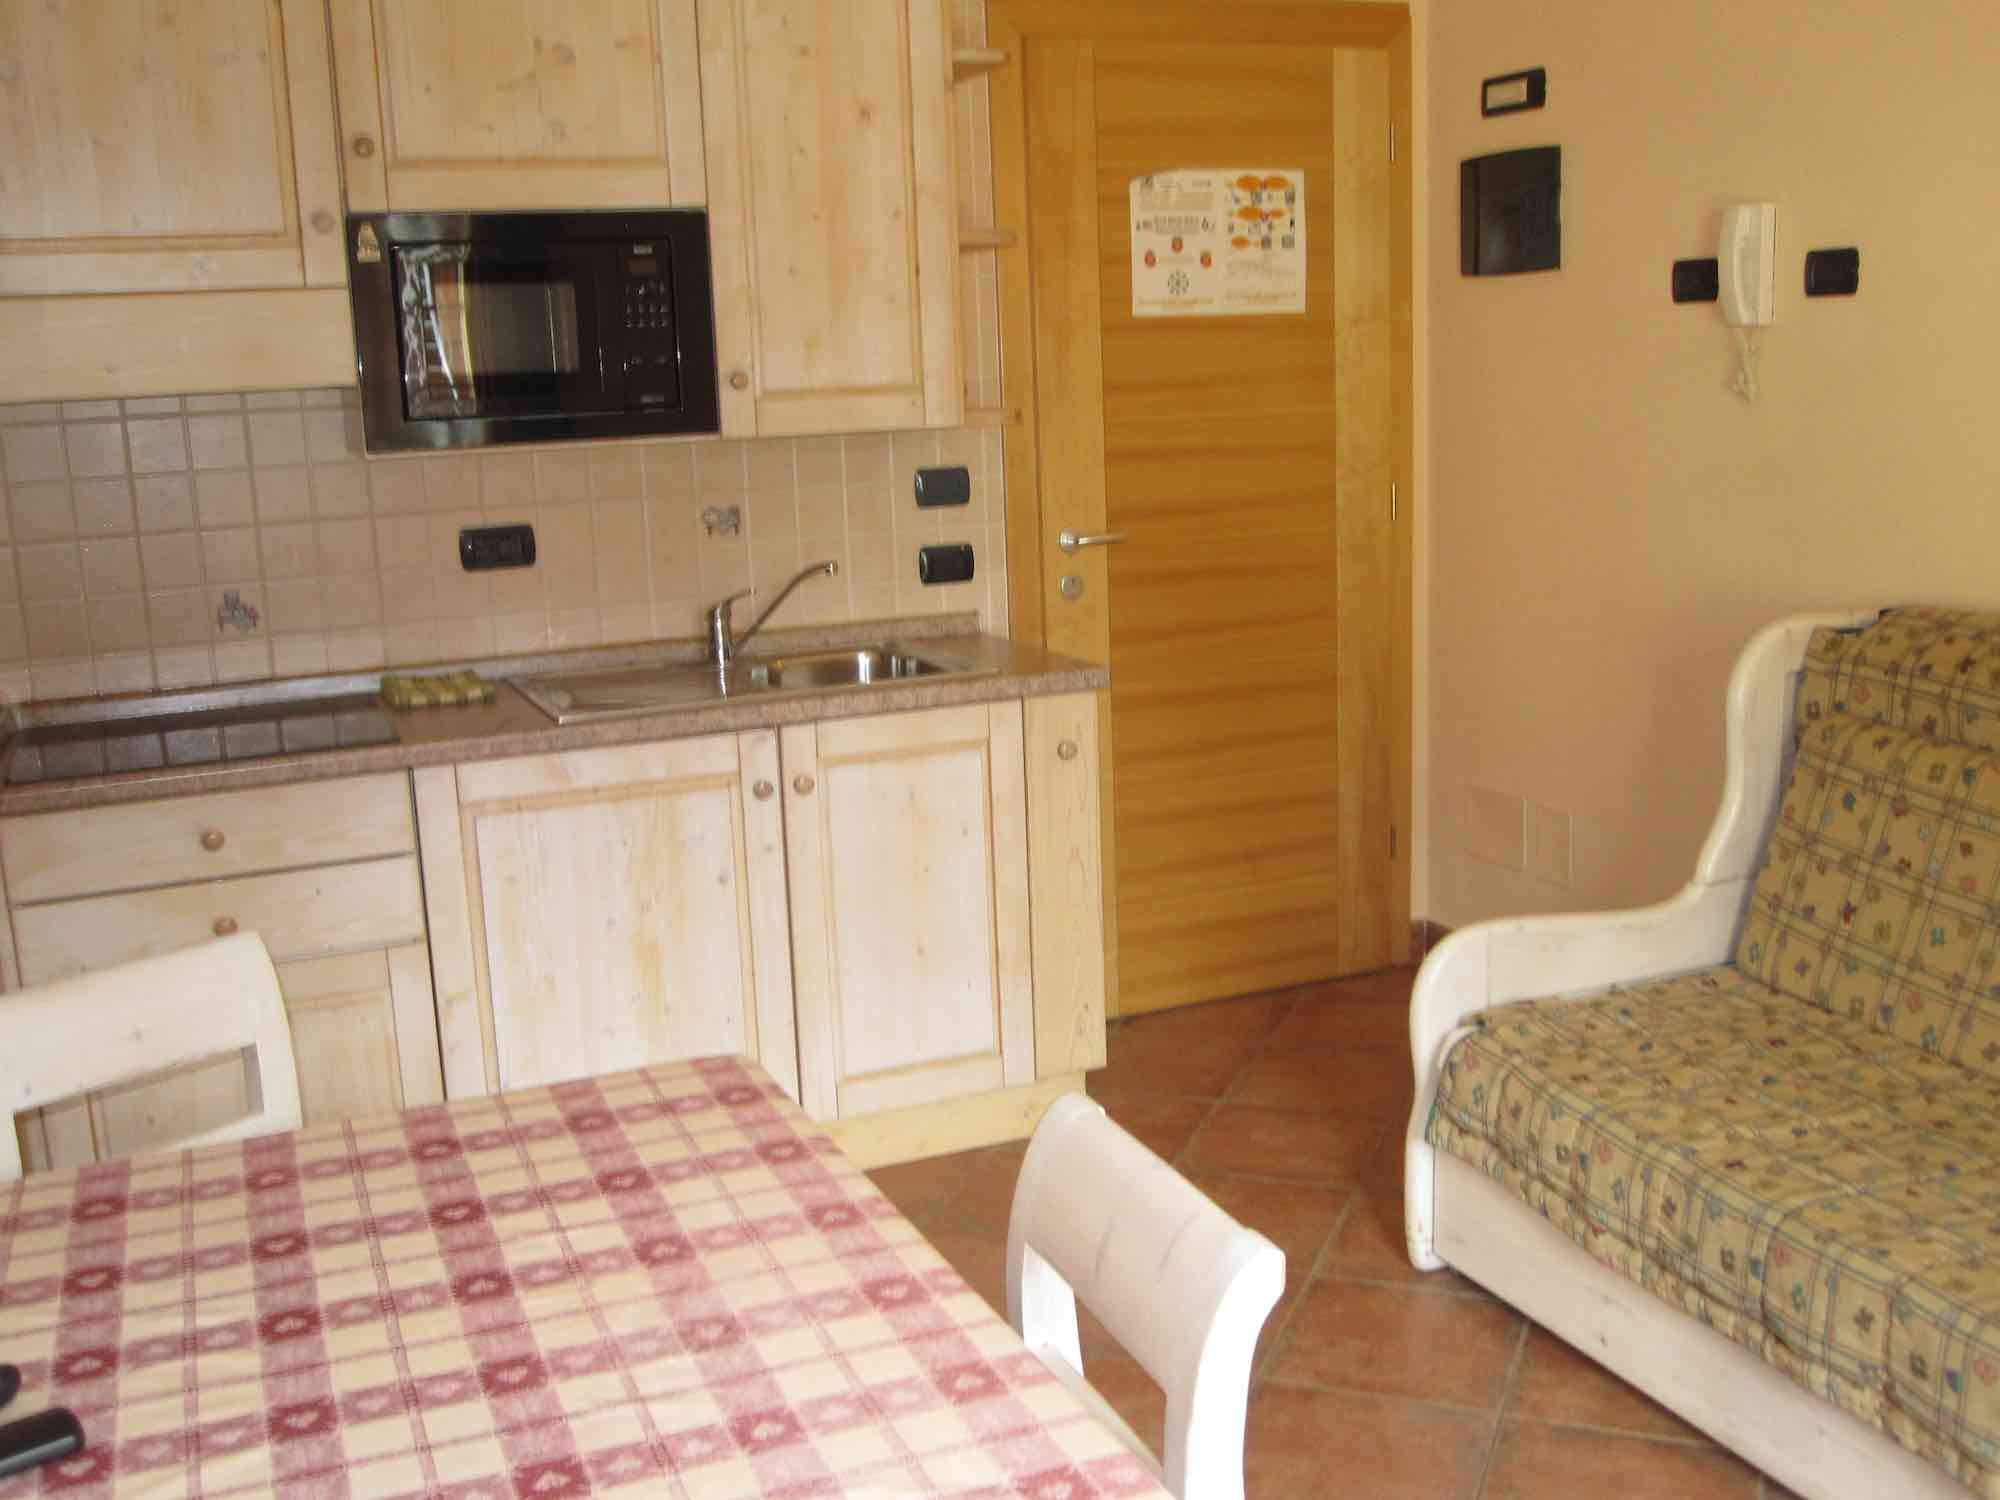 Baita La Broina - Via Florin, 24 - Apartment - Appartamento 8 1